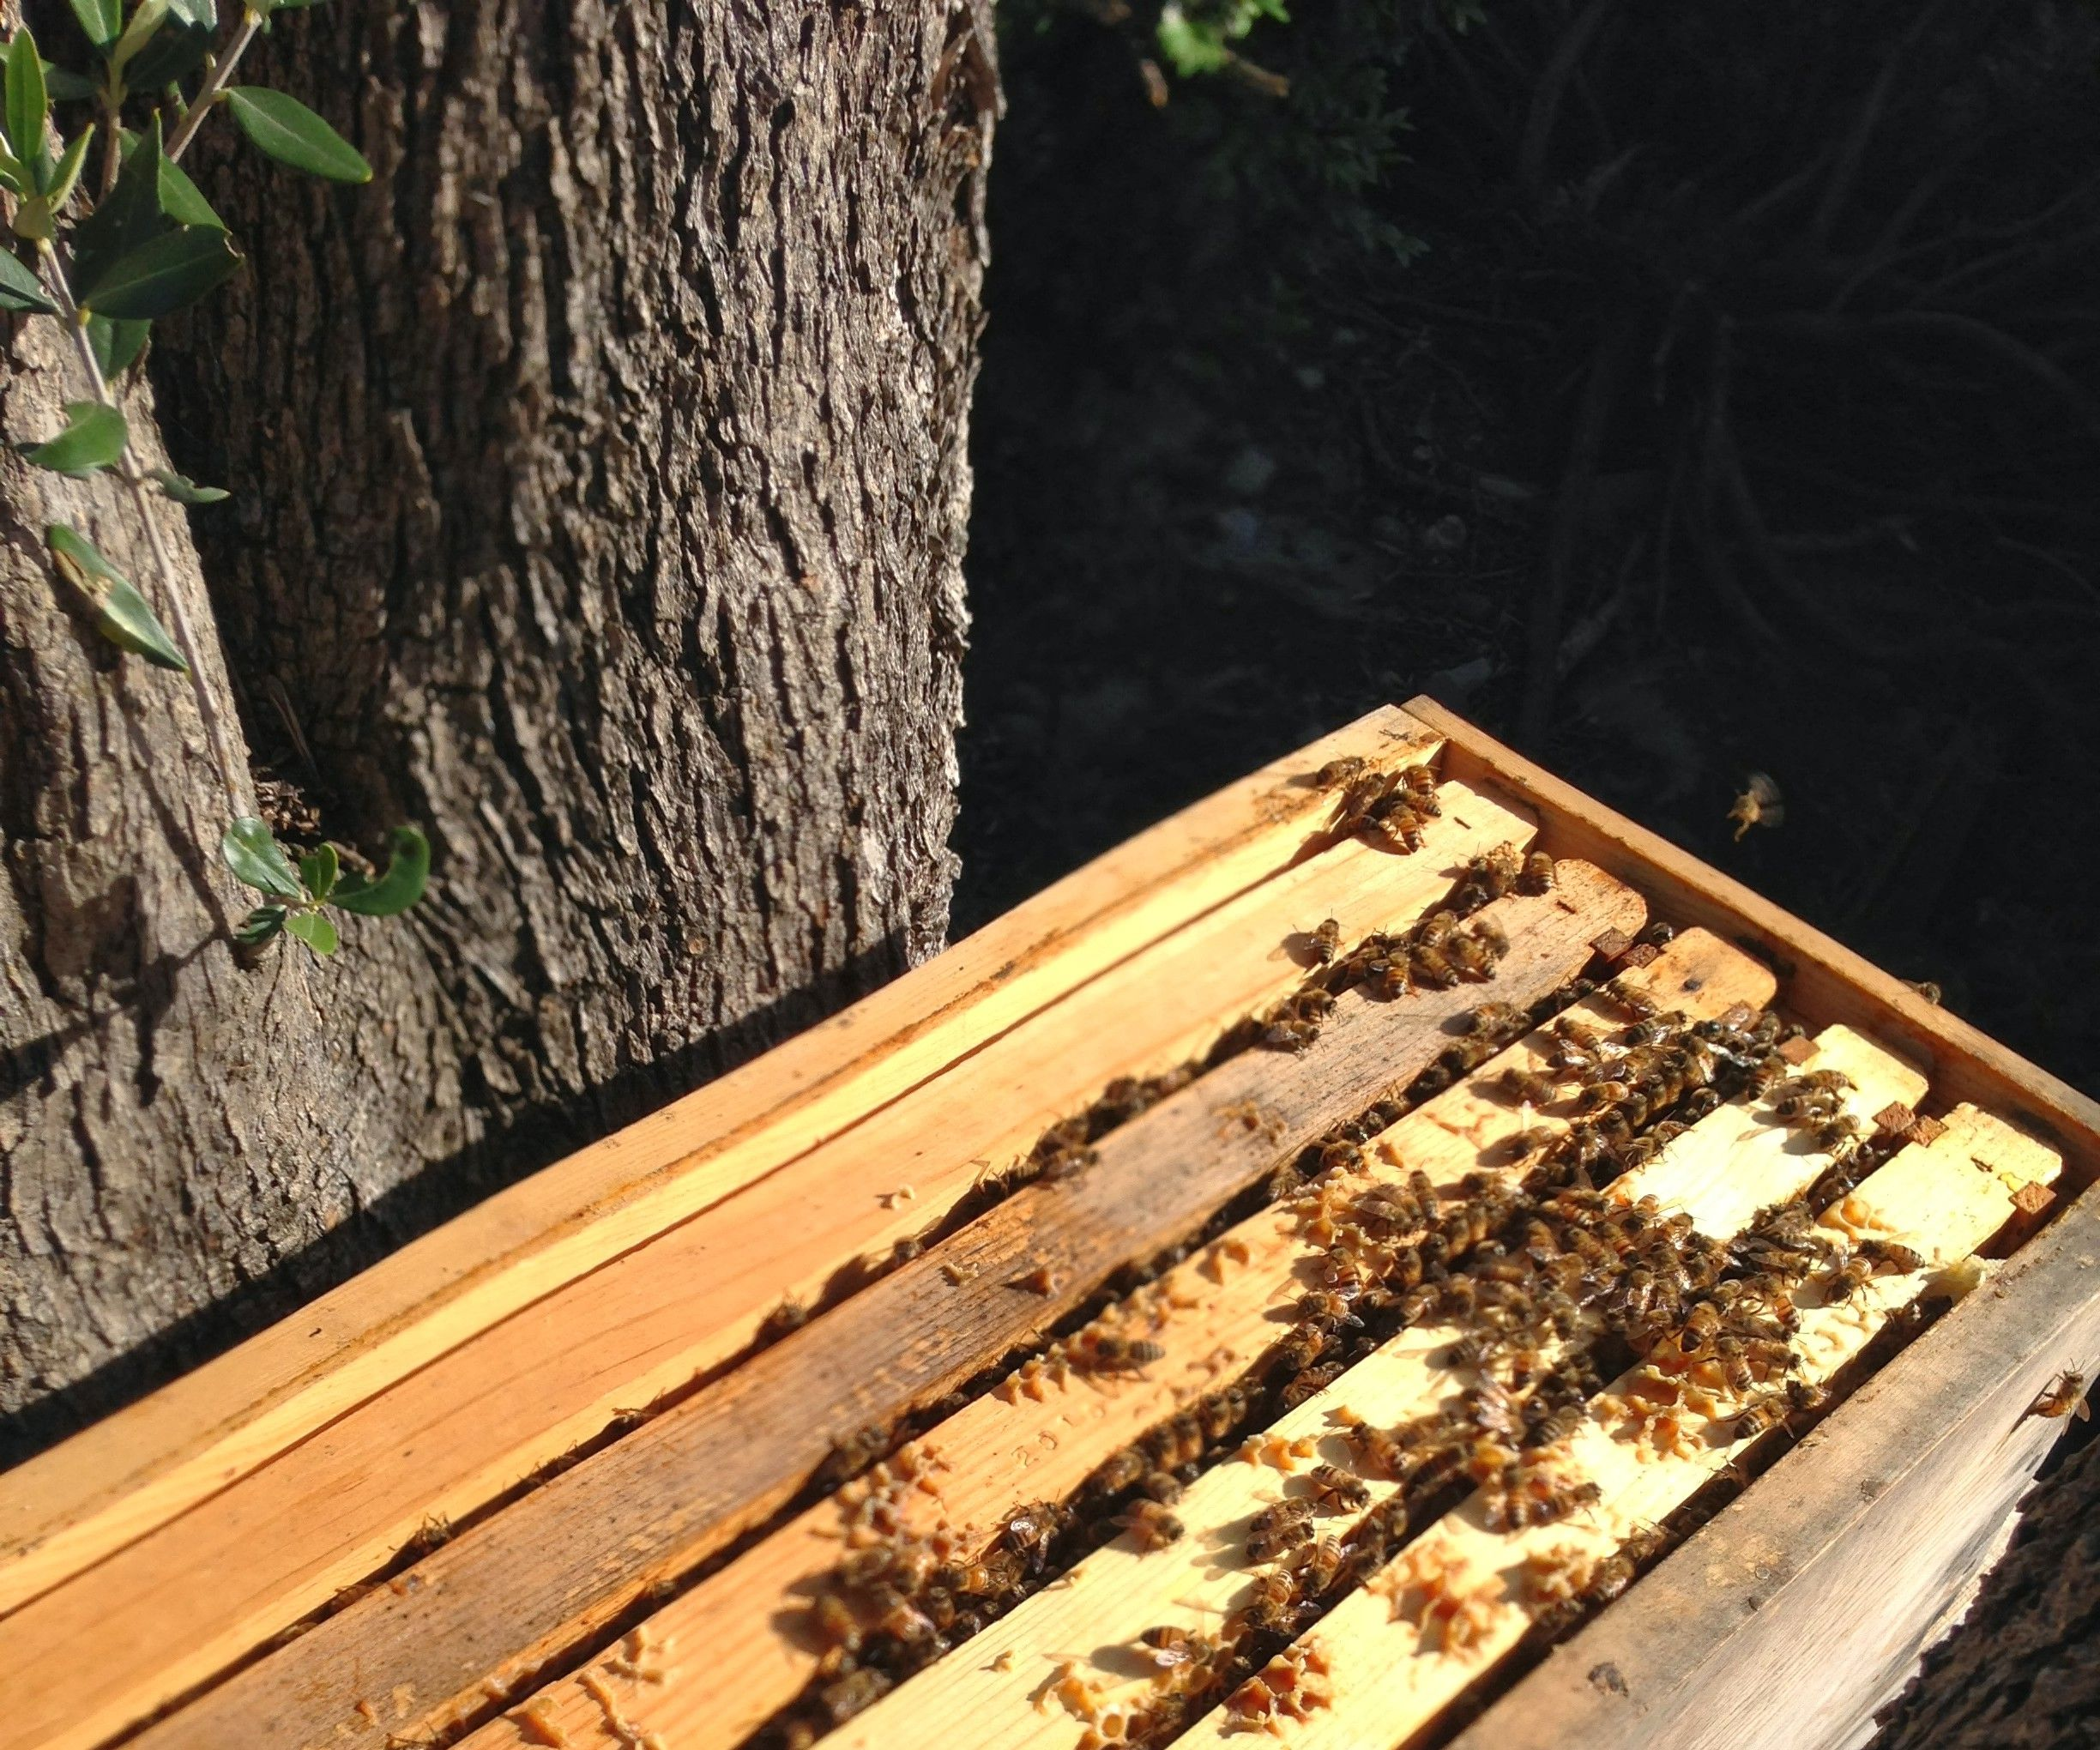 How to Make a Nucleus Honeybee Colony (and prevent established hives from swarming)